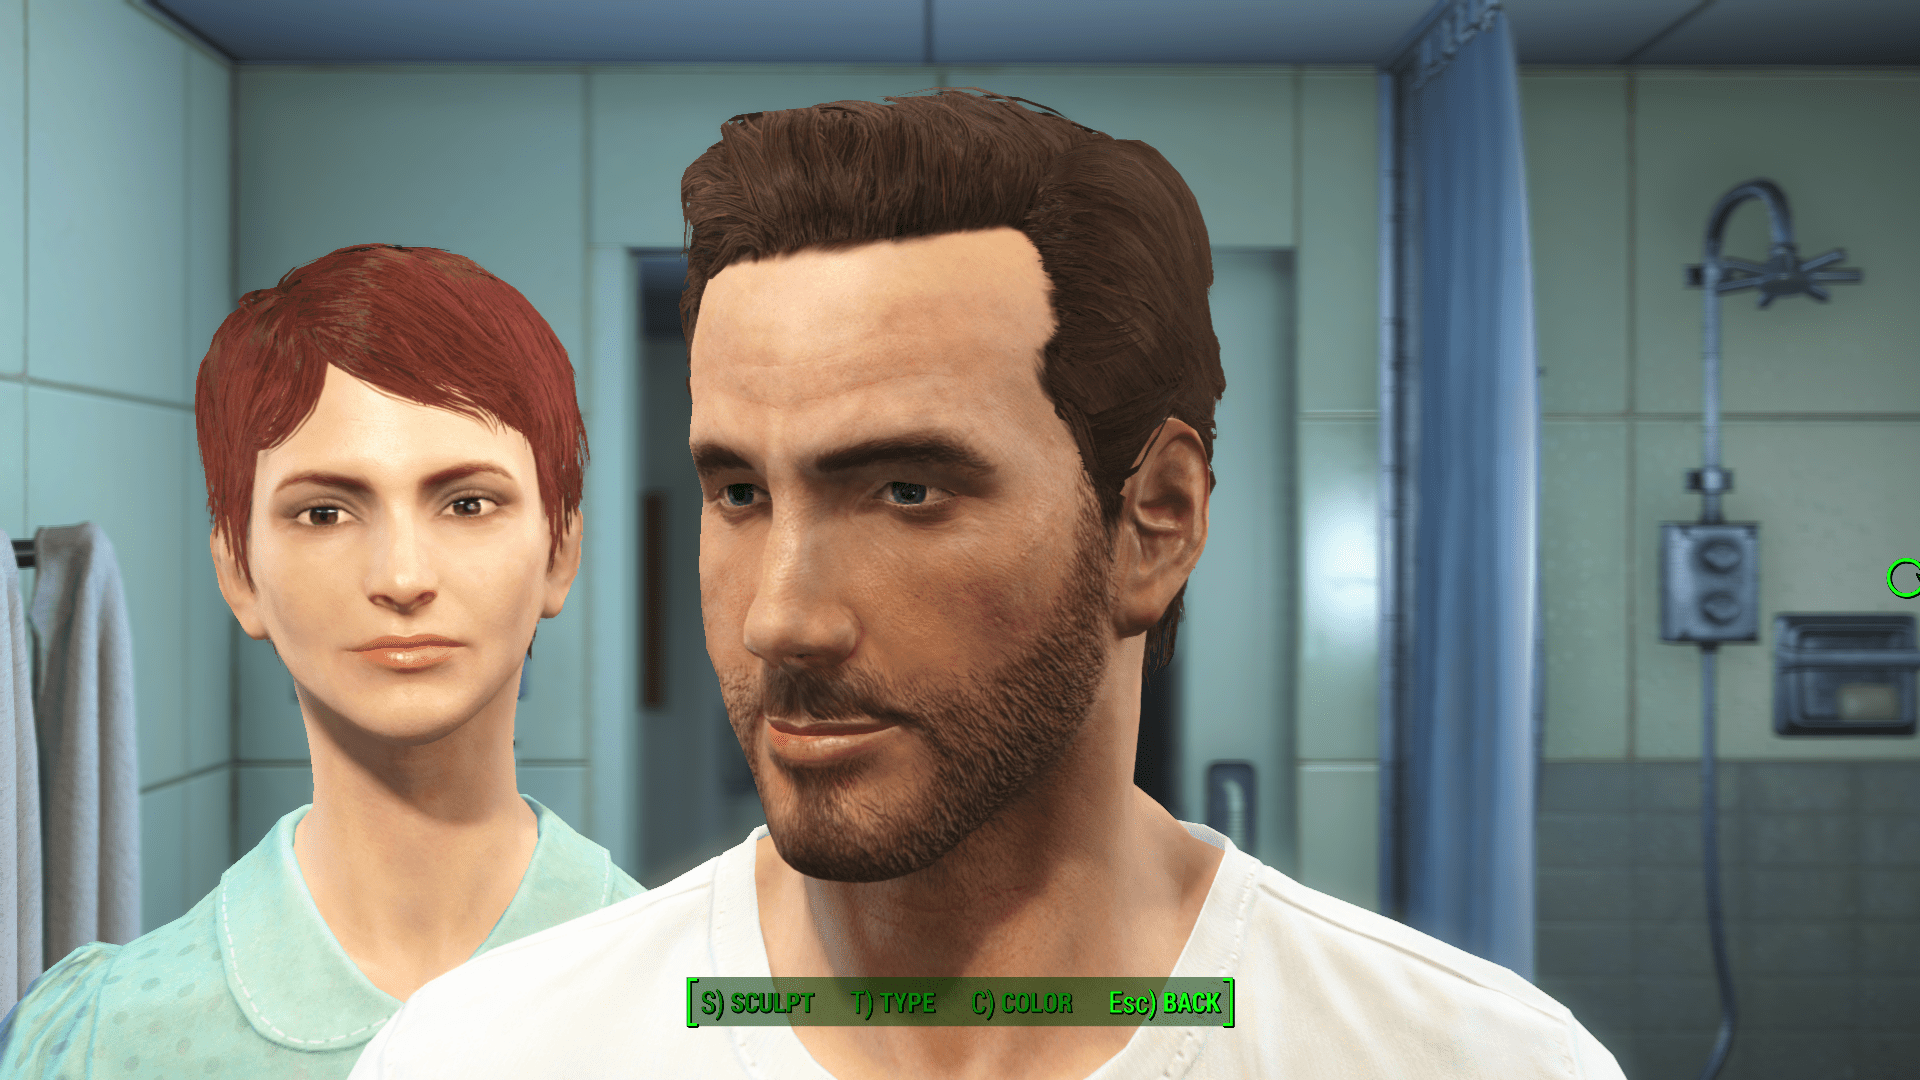 People Are Recreating Celebrities In Fallout 4 And Their